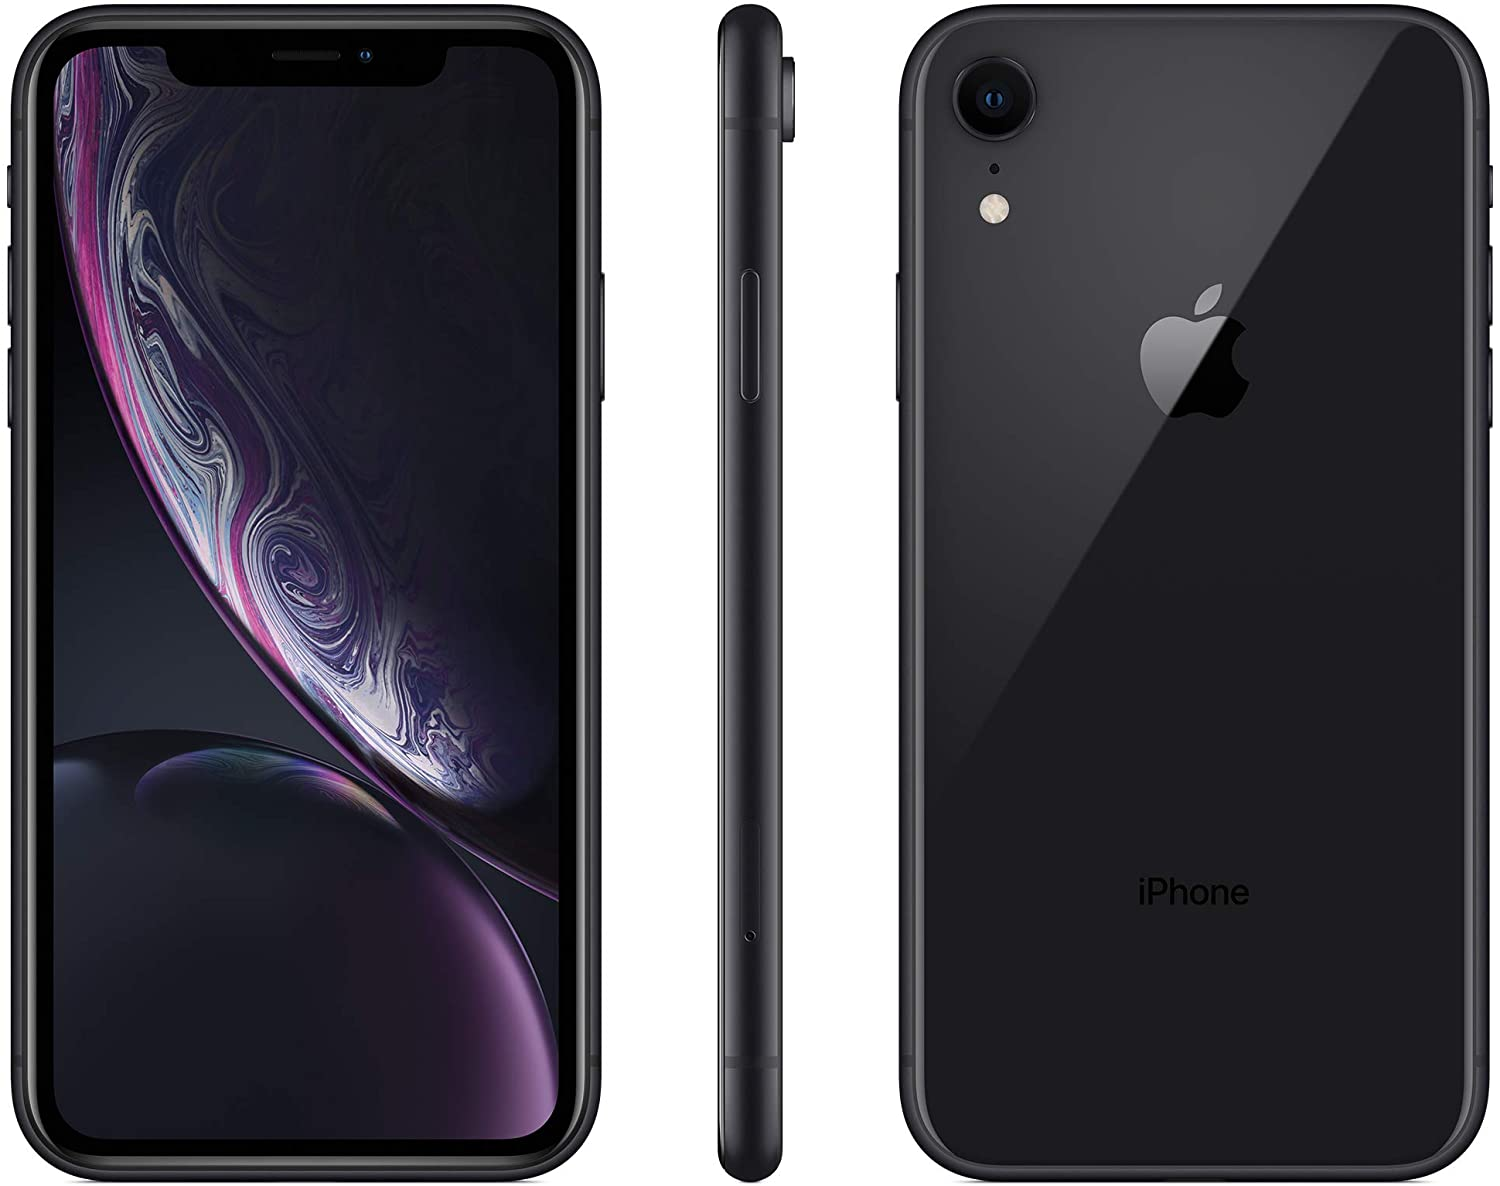 Apple iPhone XR, AT&T, 128GB - Black (Renewed)